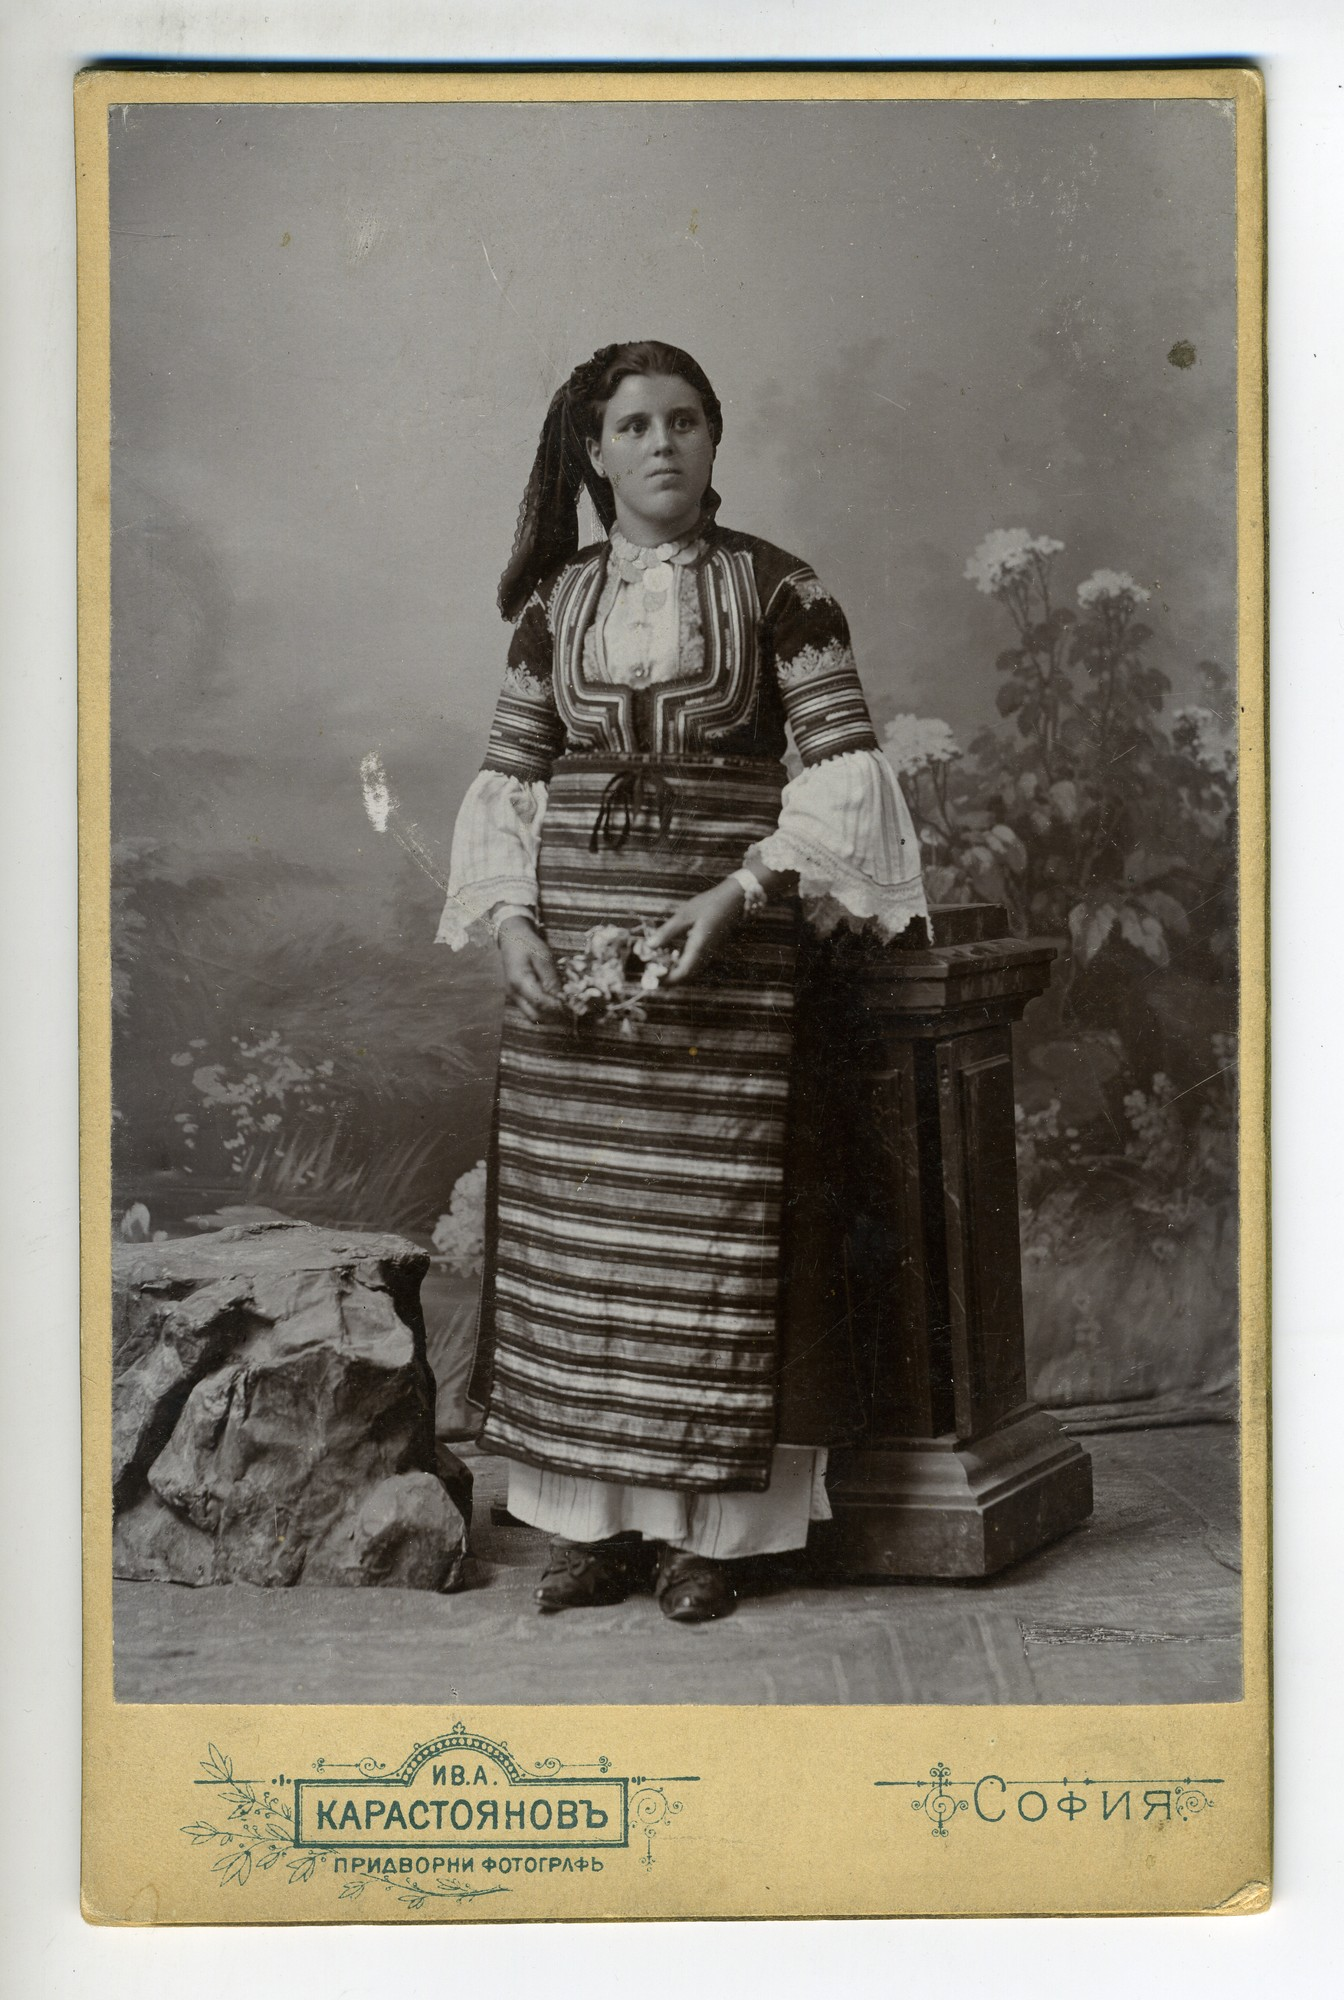 Studio portrait of a woman in folk dress, © Institute for Ethnology and Folklore Studies with Ethnographic Museum - AEIM, BAS